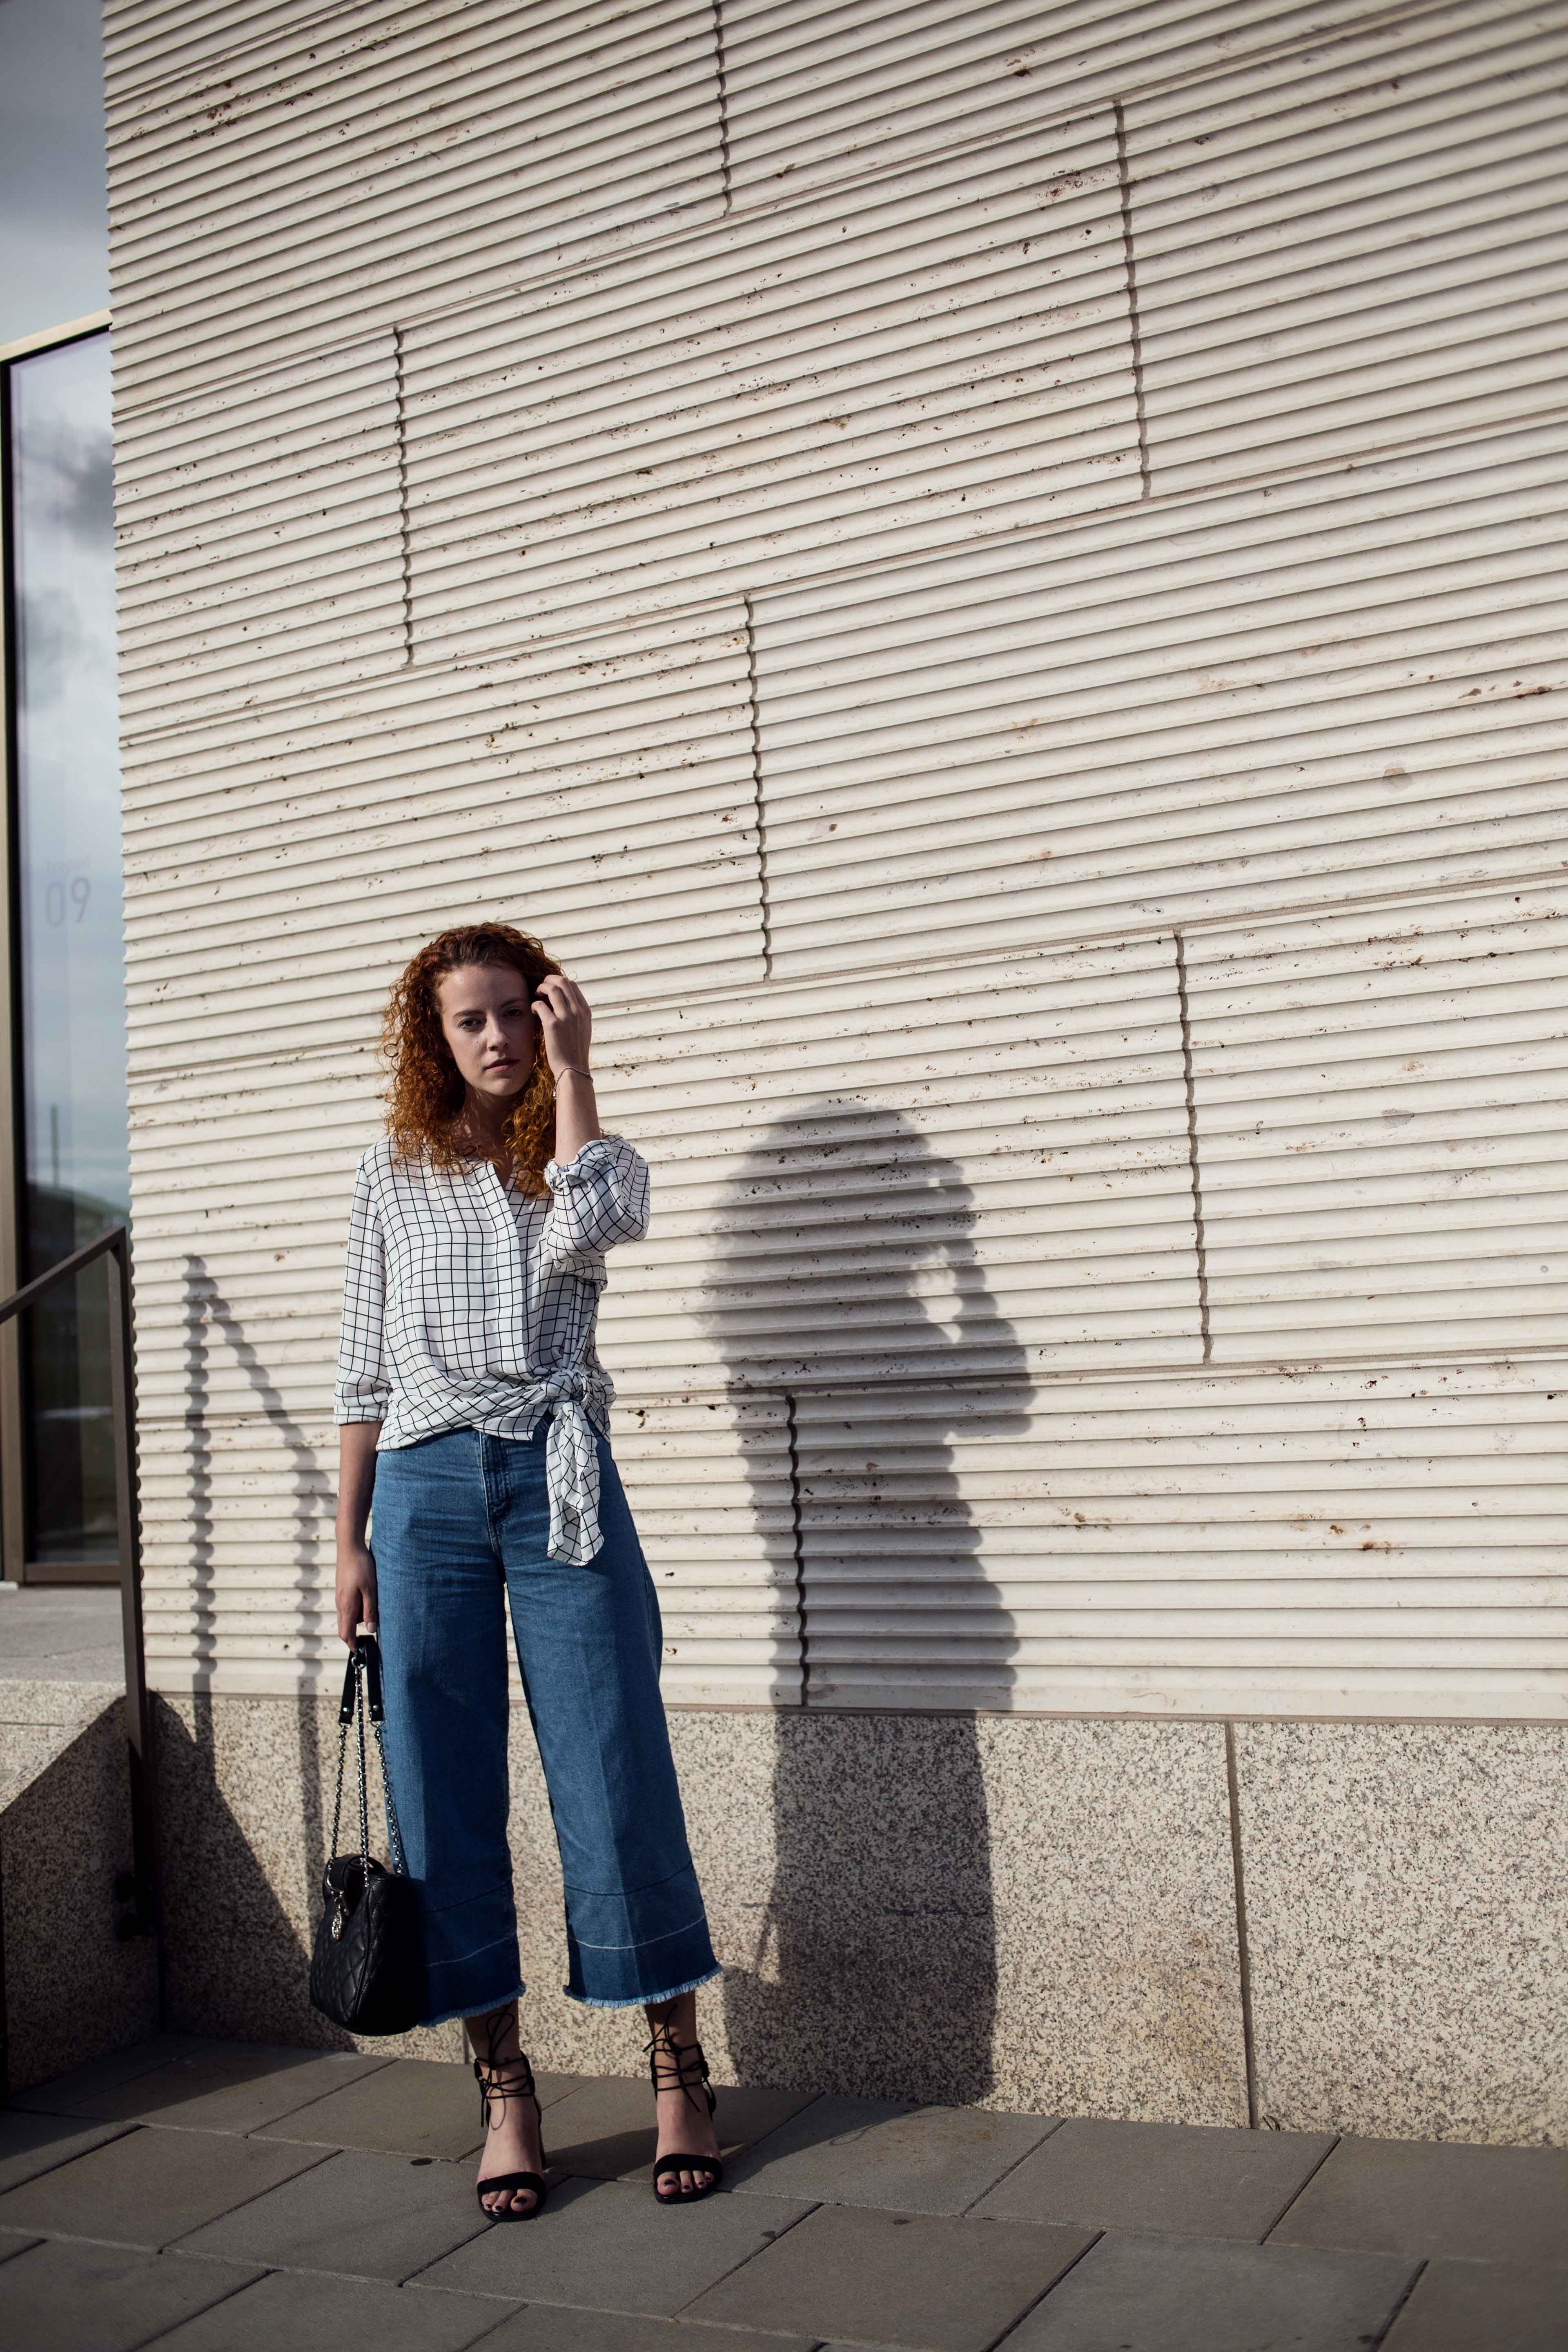 erlin mercedes benz mbfw outfit streetstyle inspiration blogger fashionblogger fashion mode looks look frankfurt blogger inspo the curled girl deliah